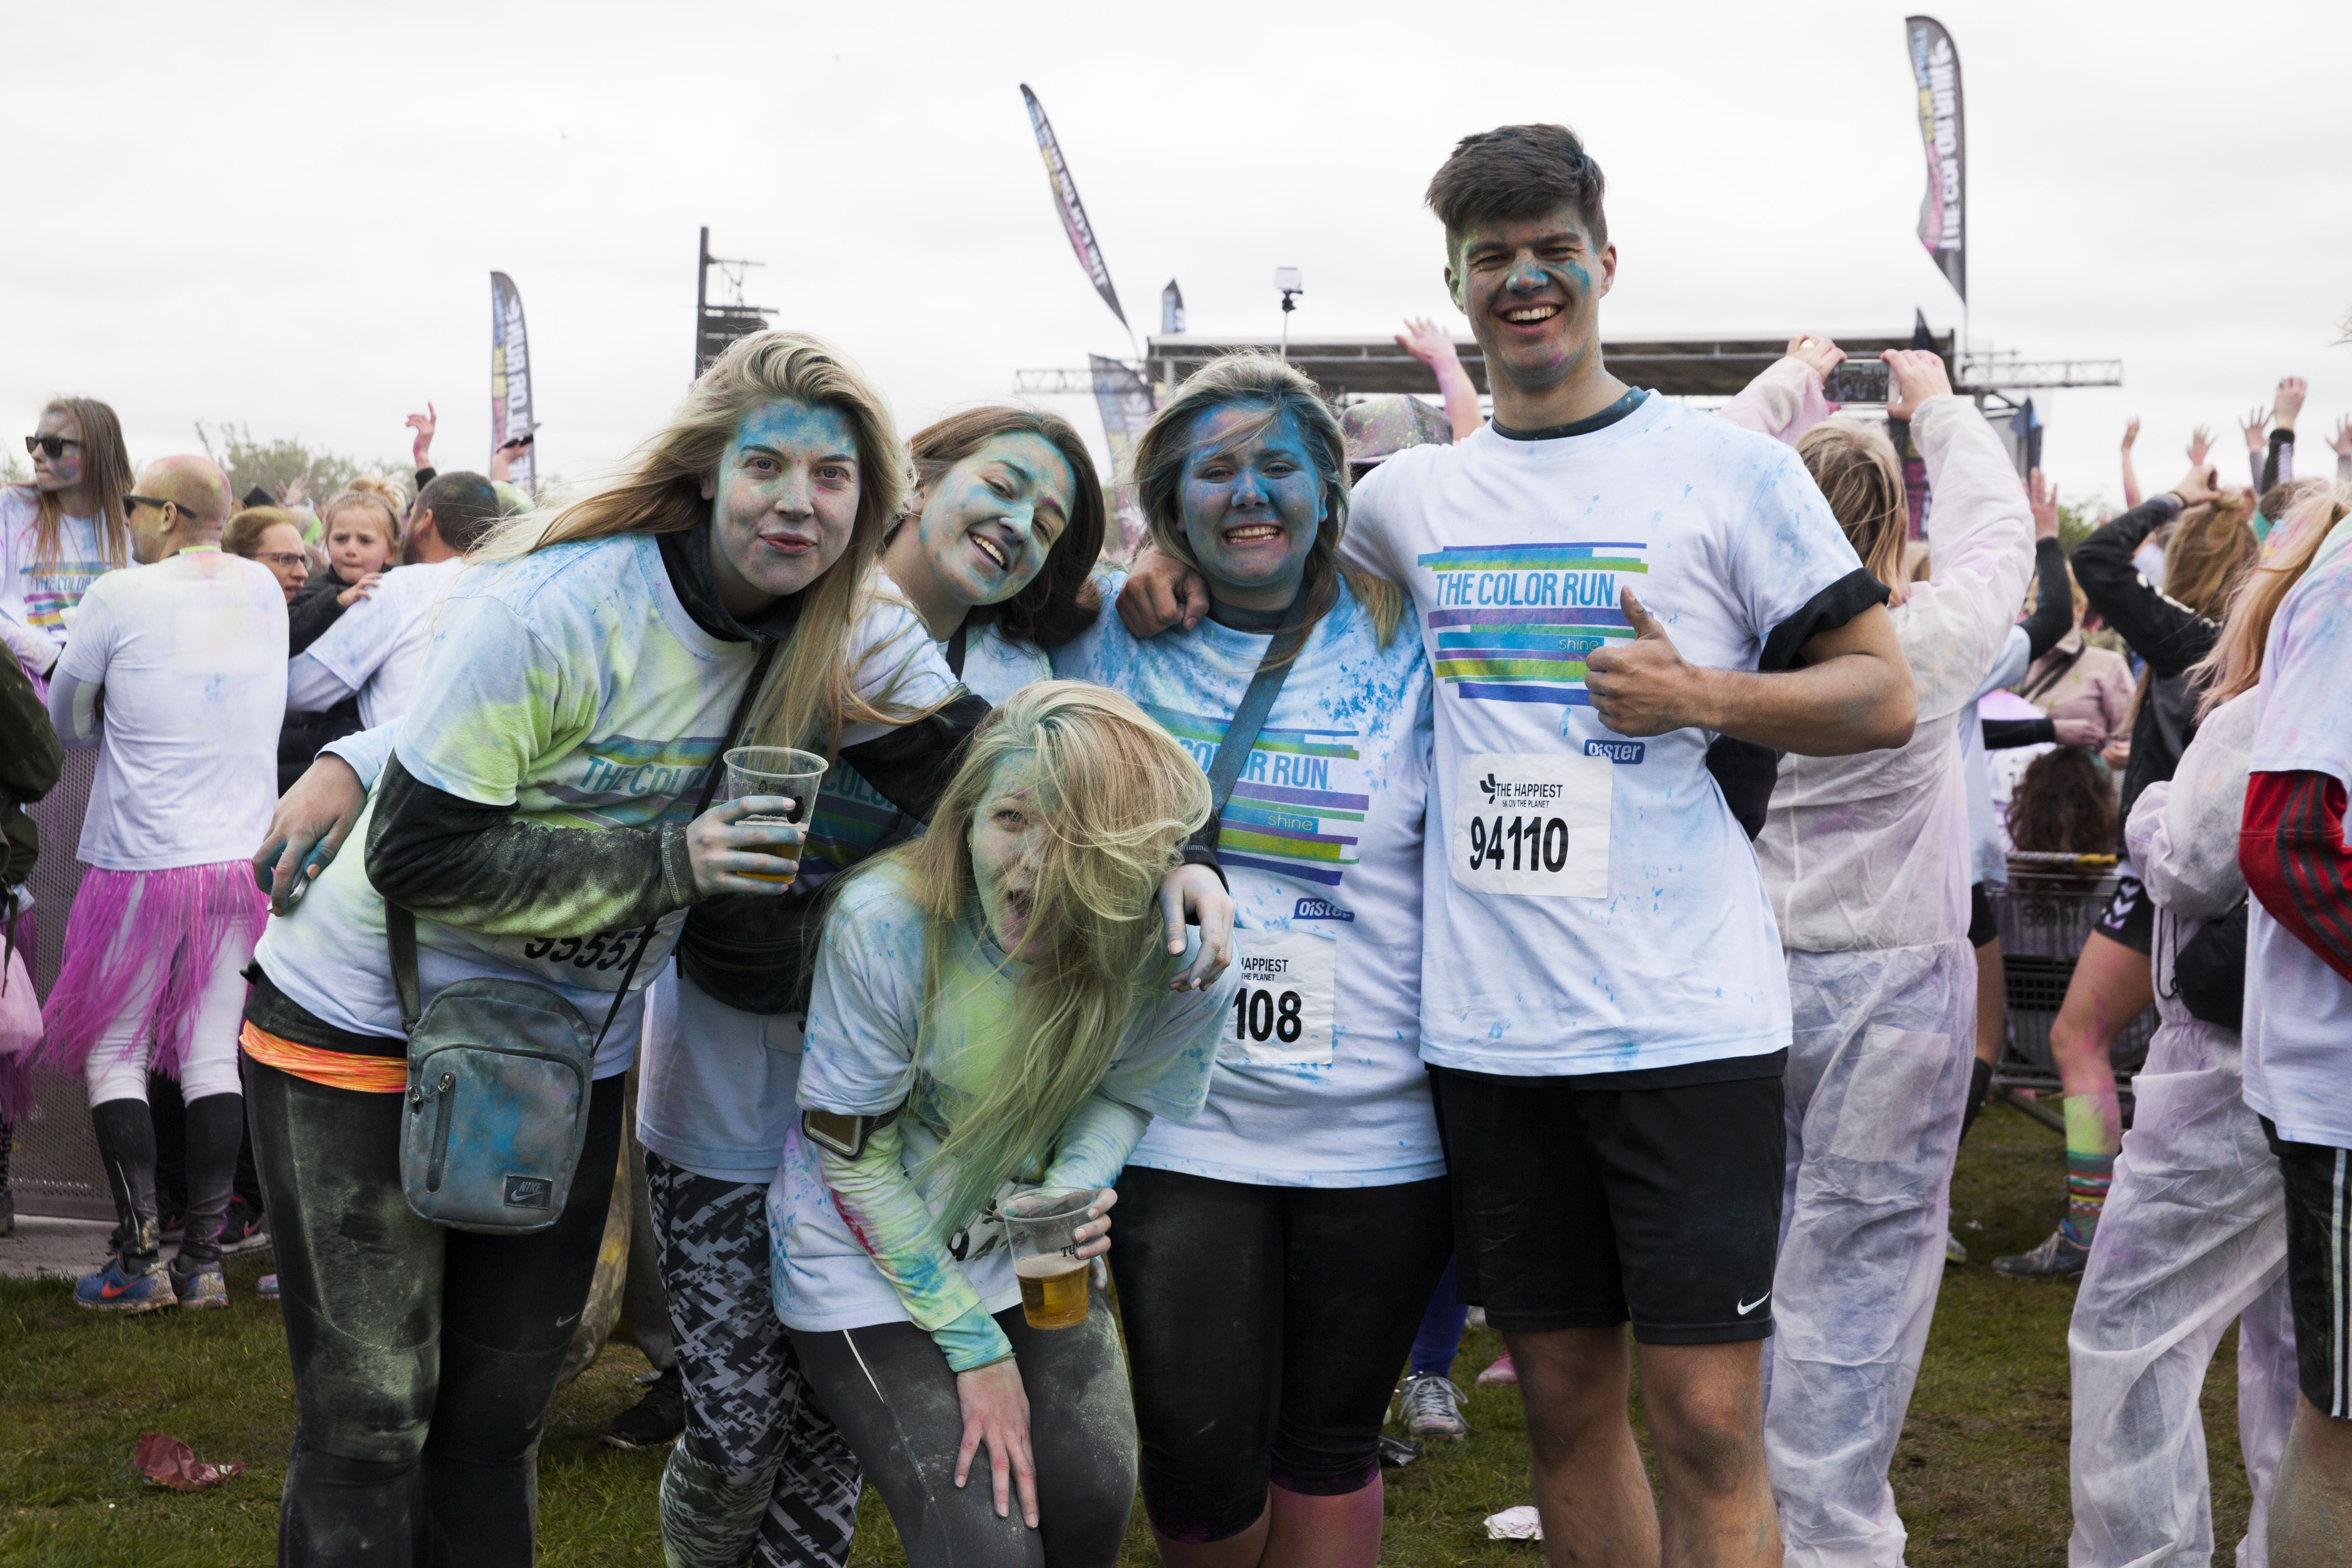 TheColorRun2015_HelenaLundquist_mindre_2